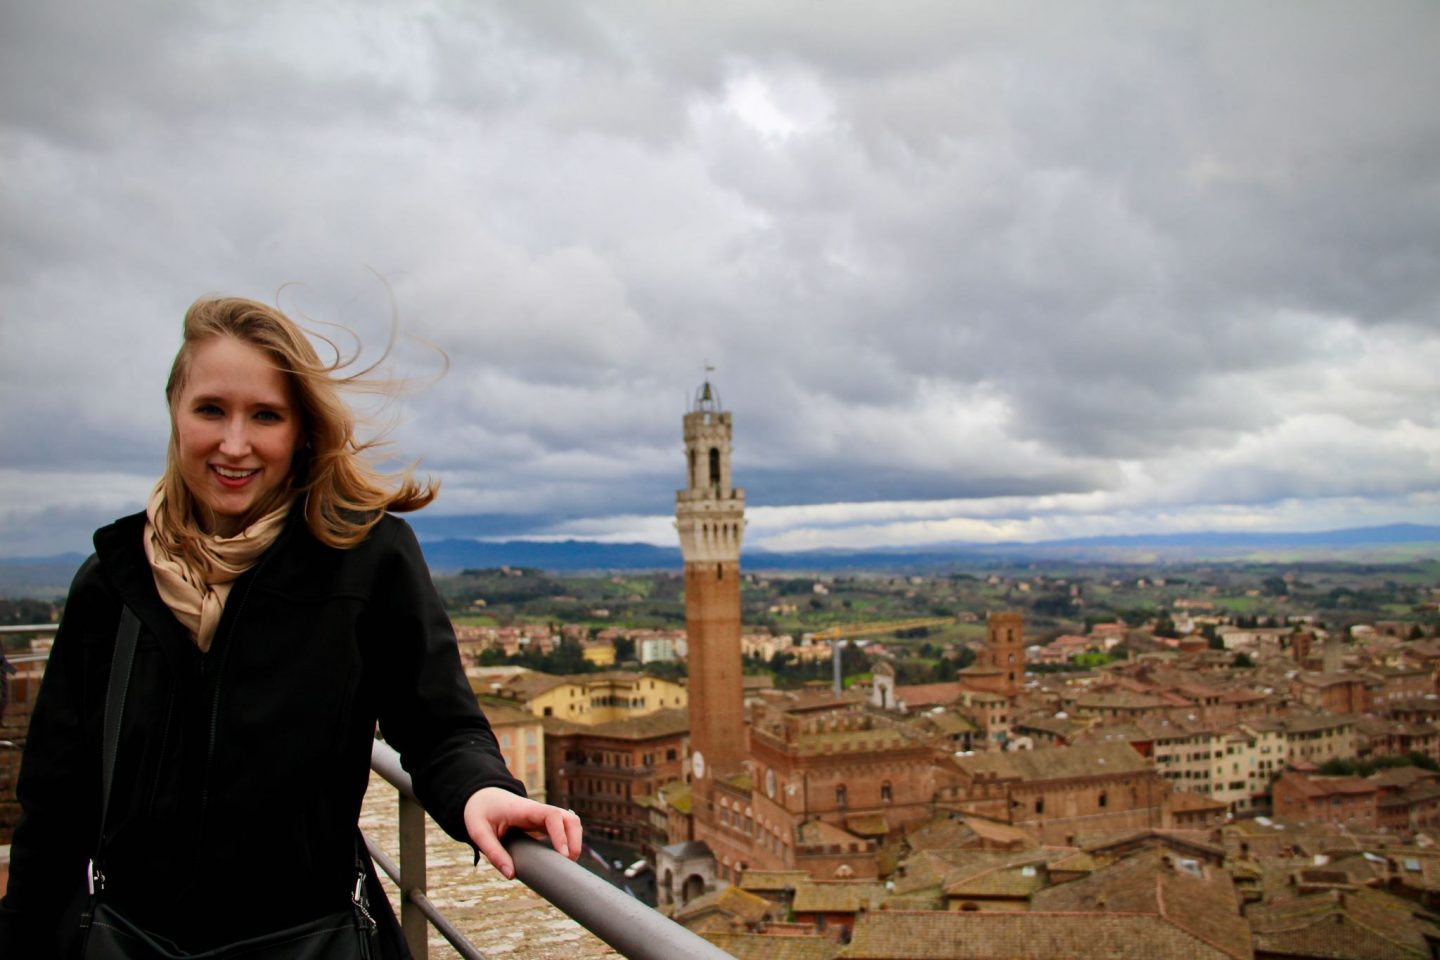 Siena, Italy ... Exploring the Tuscan Hills ... The Spectacular Adventurer